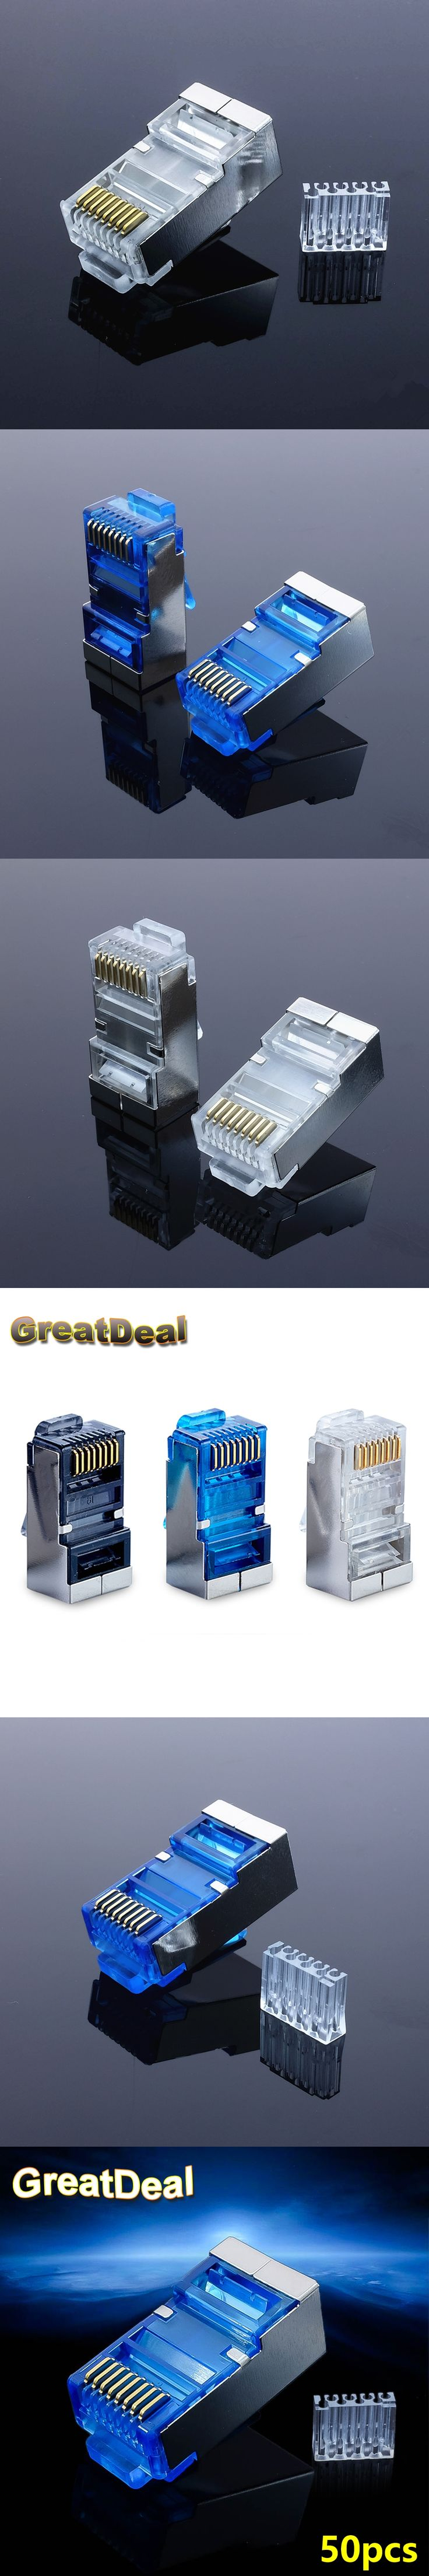 50pcs Blue Cat 6 rj45 connector cat6 network connector rj45 plug split type 8P8C stp metal shielded modular terminals HY1532